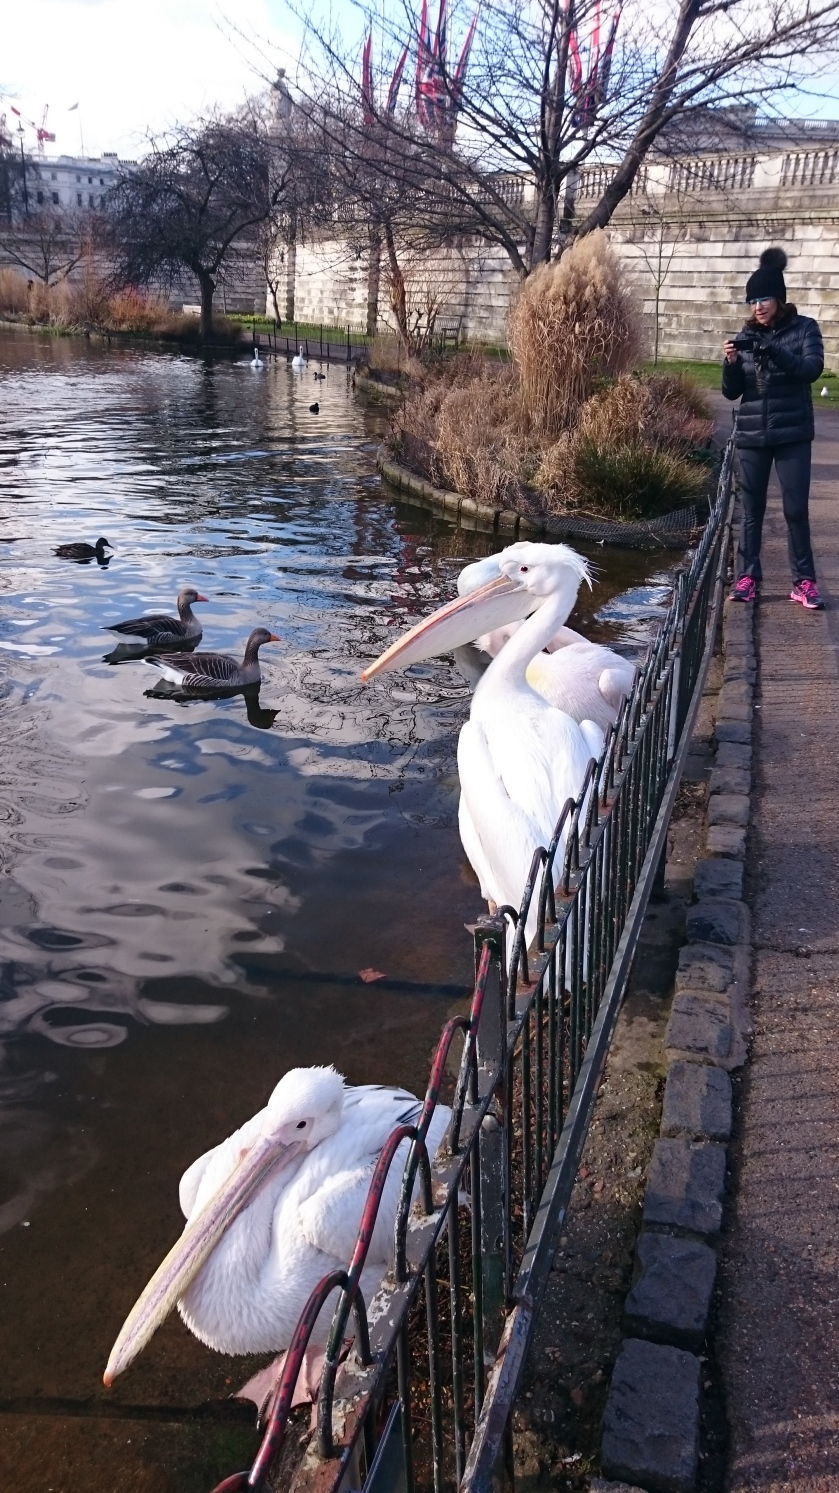 Spotted in St James' park. Giant pelicans. Where did they come from and who else knew they were there?!